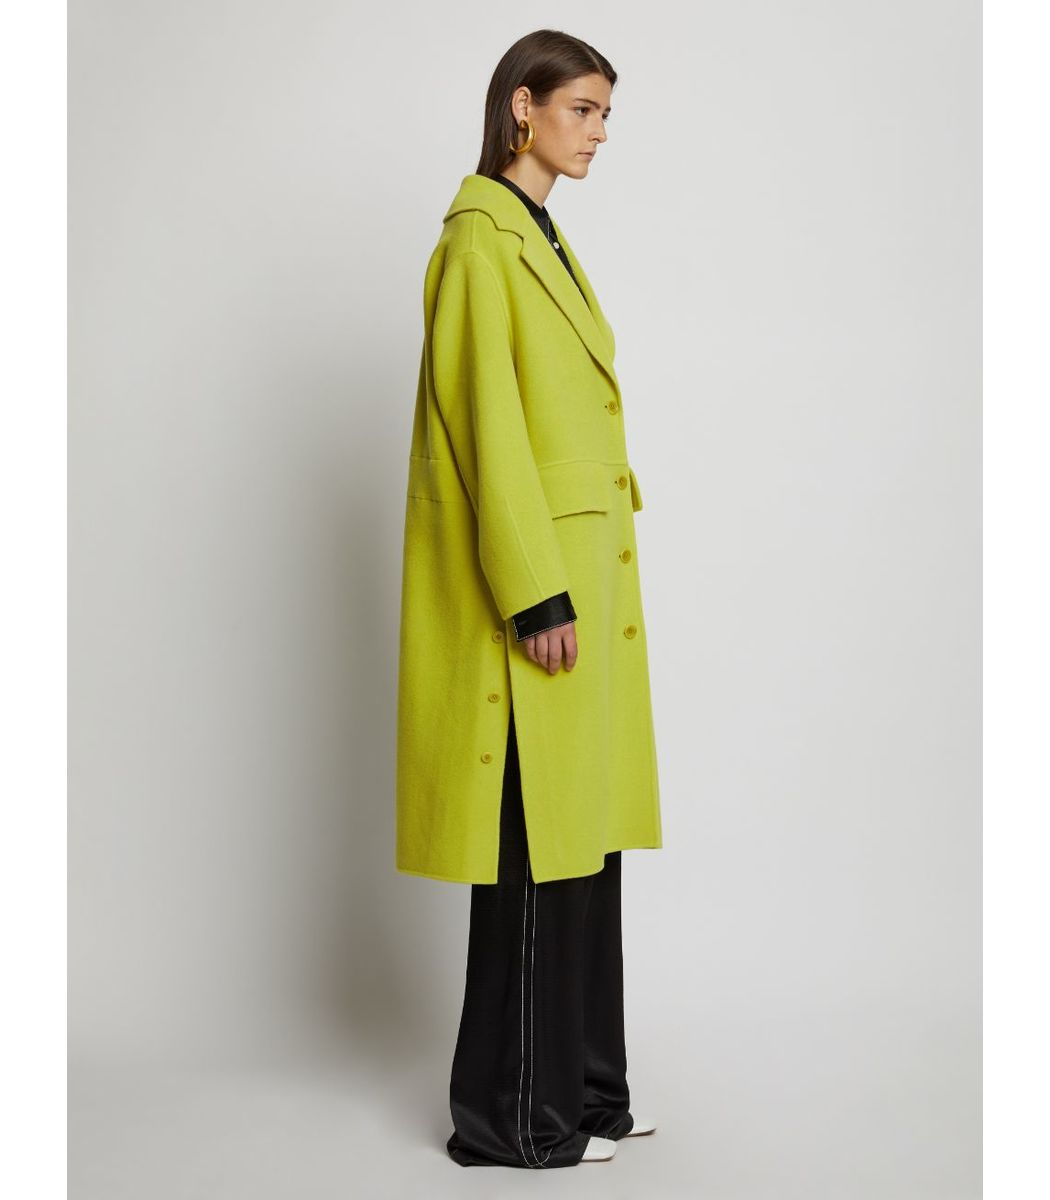 PROENZA SCHOULER WHITE LABEL Coats Double Face Coat